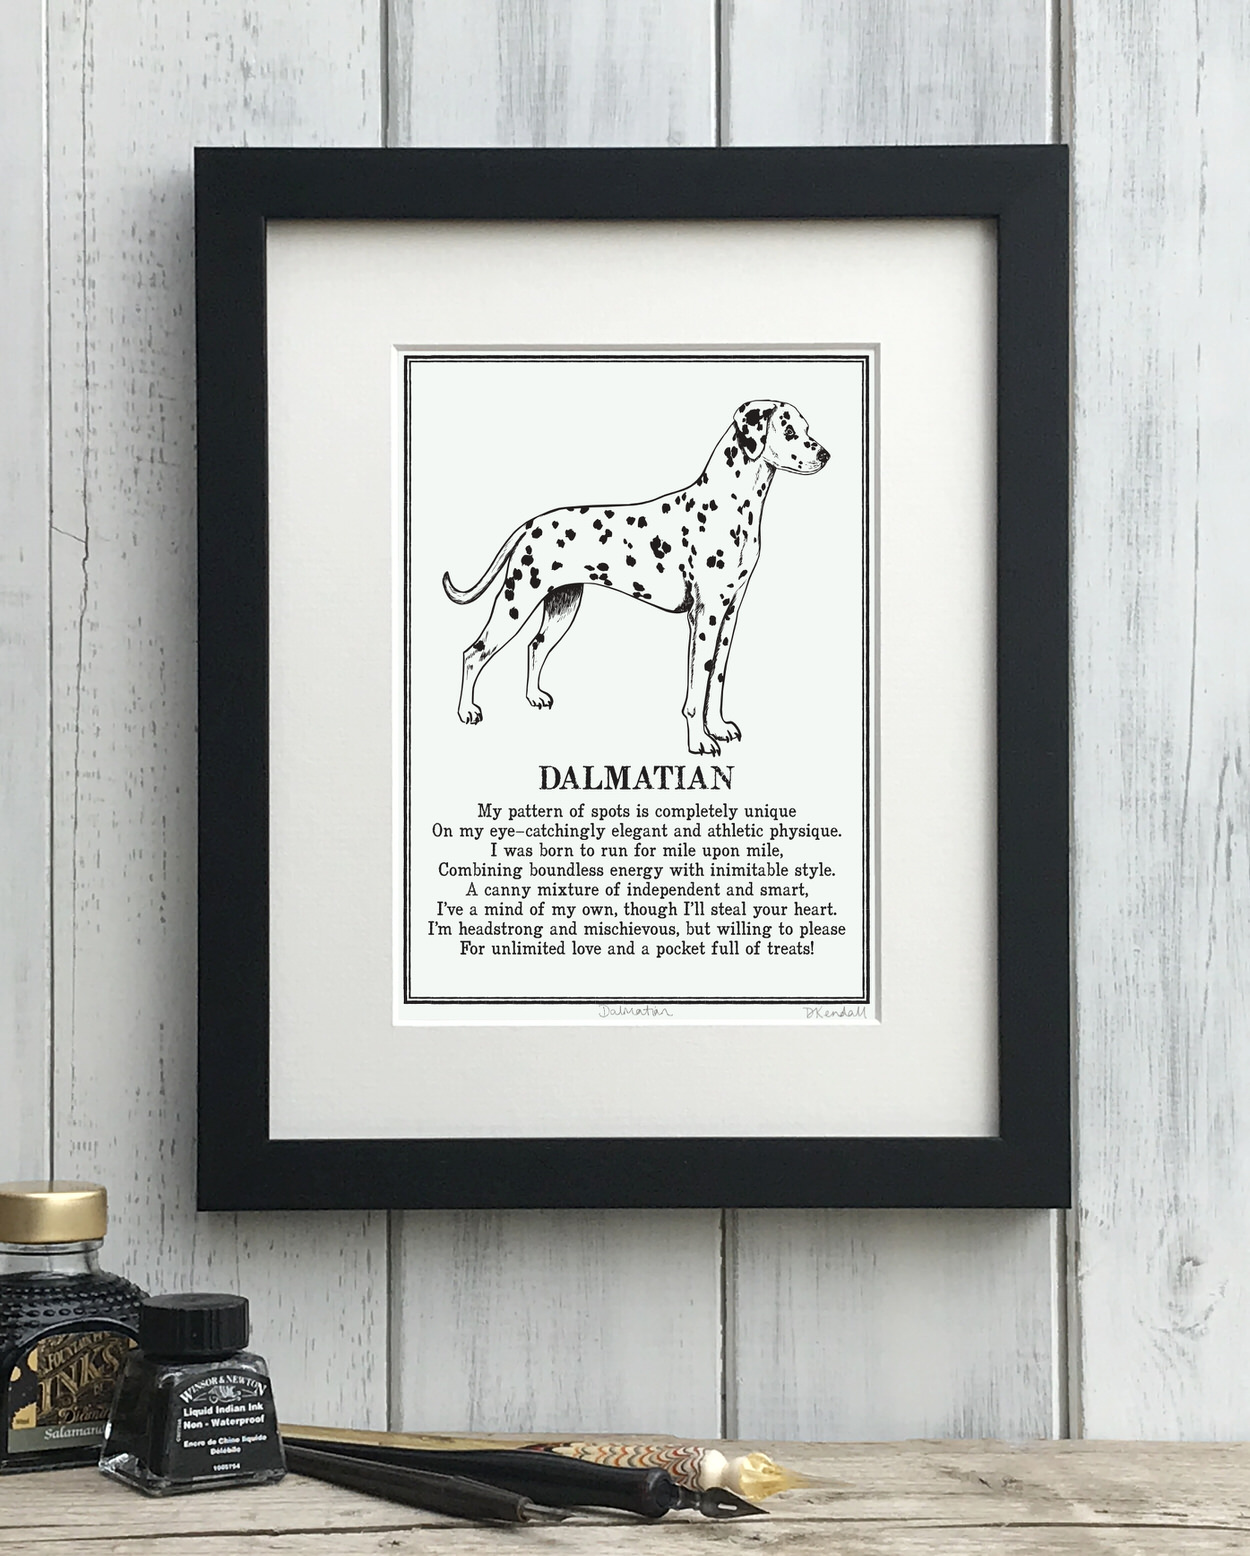 Dalmatian Doggerel Illustrated Poem Art Print | The Enlightened Hound